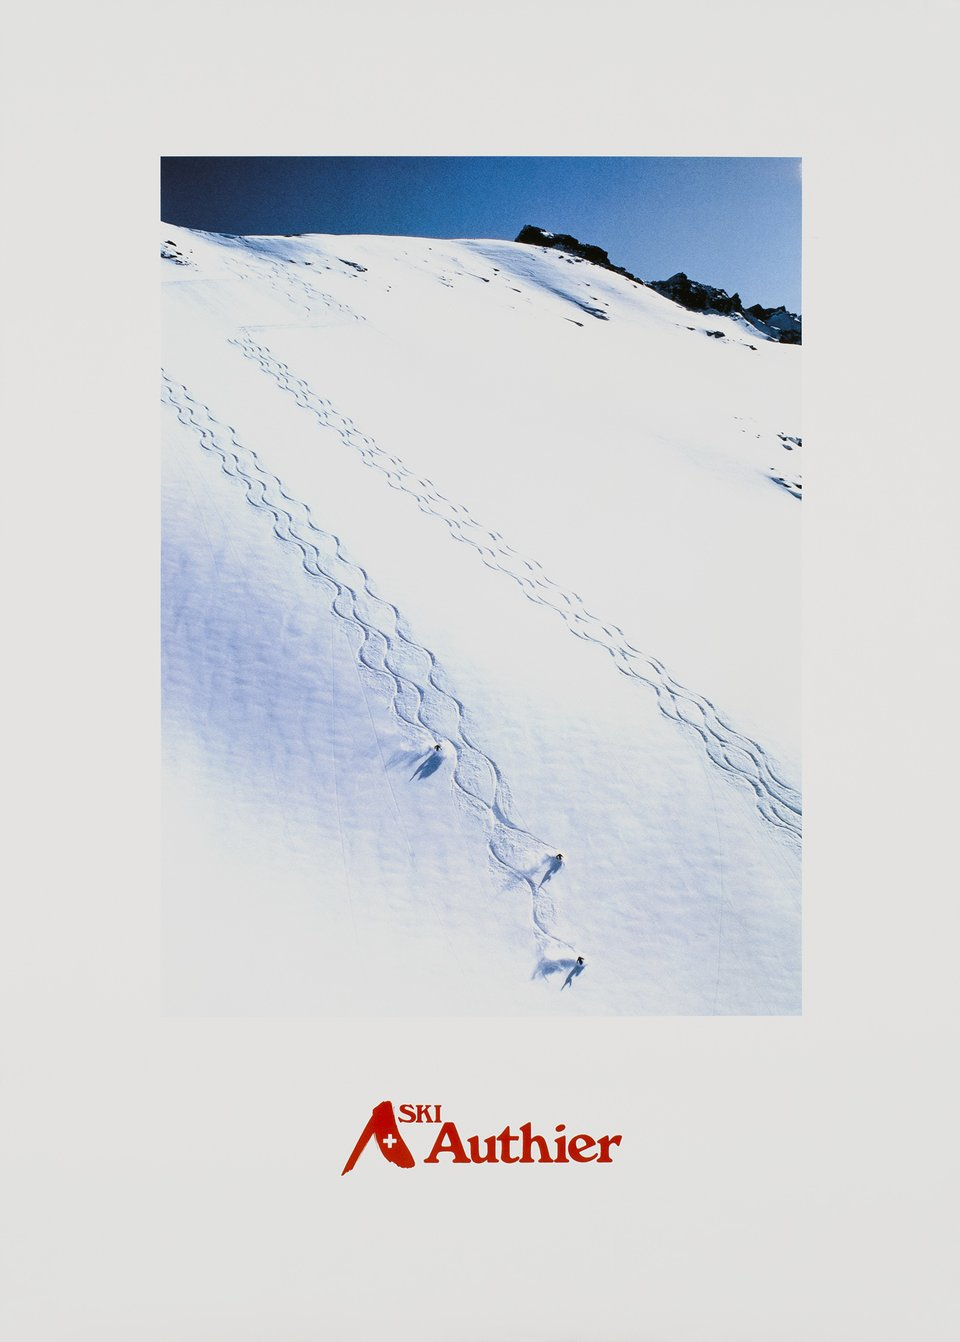 Ski Authier – Vintage poster – ANONYMOUS – 1990